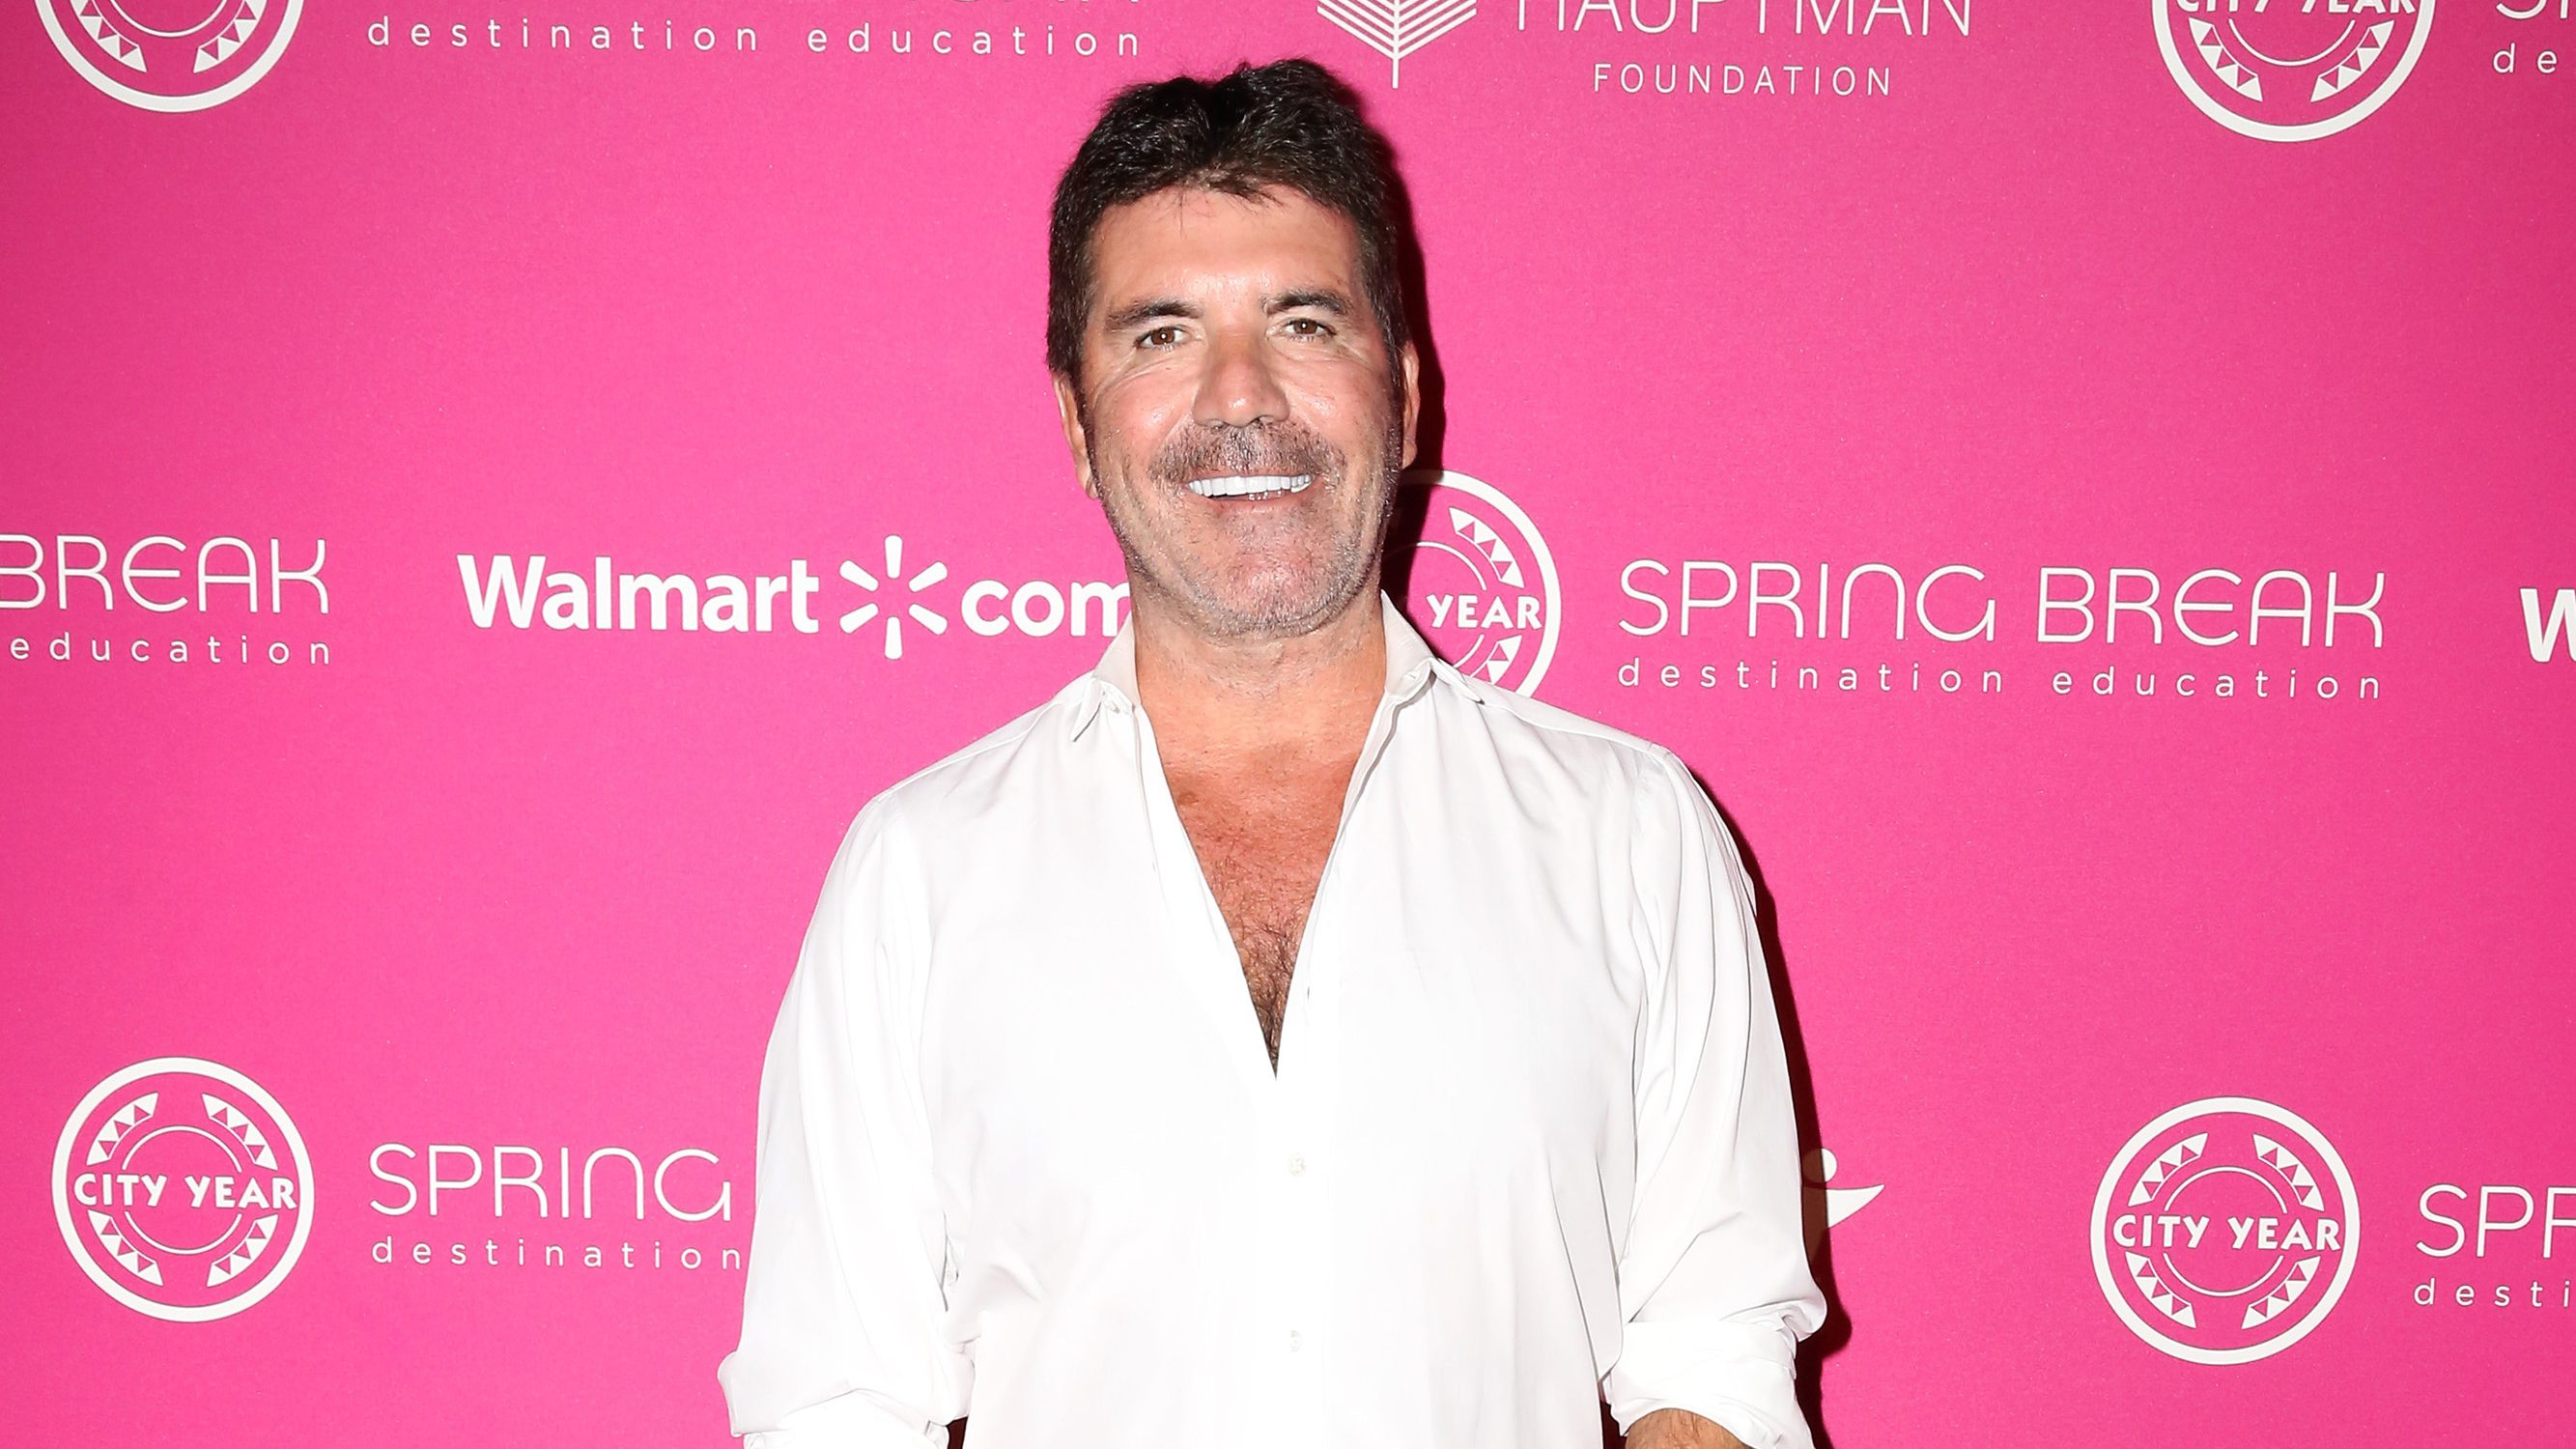 Simon Cowell Reveals He Lost 20 Pounds on Vegan Diet But Finds It 'Really Hard' to Not Eat Pizza